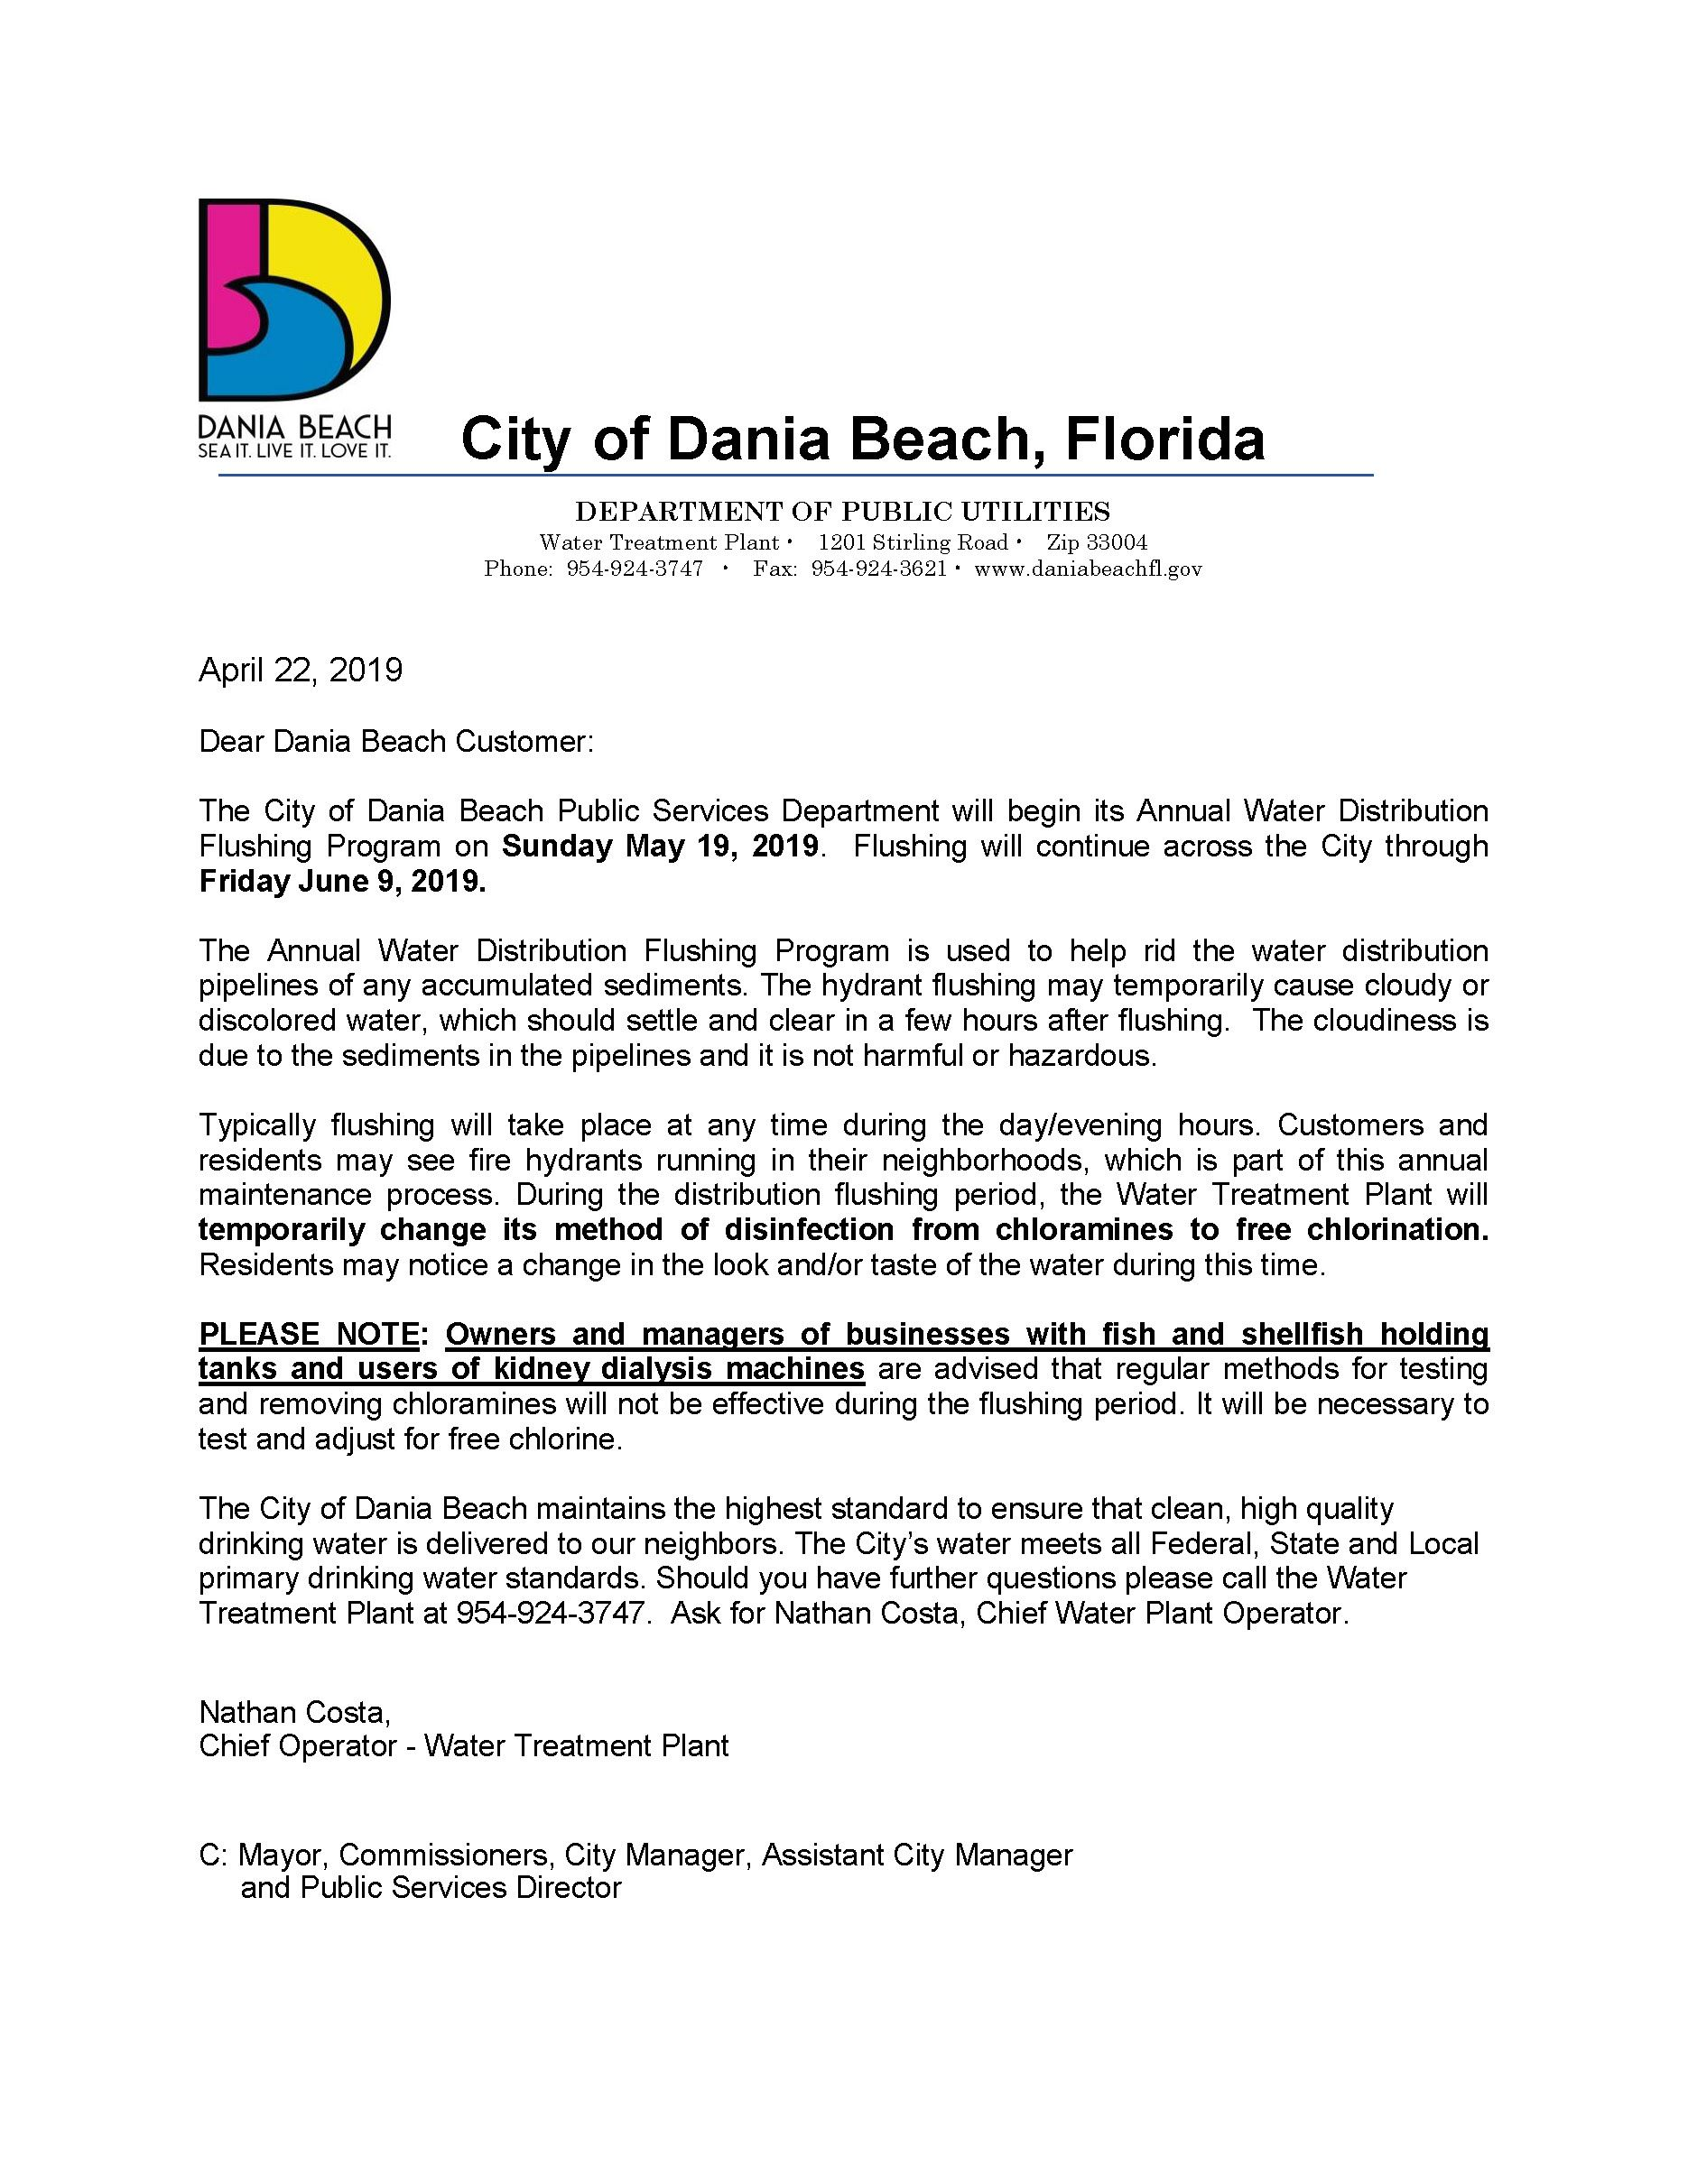 Dania Beach annual water flushing program notice 2019